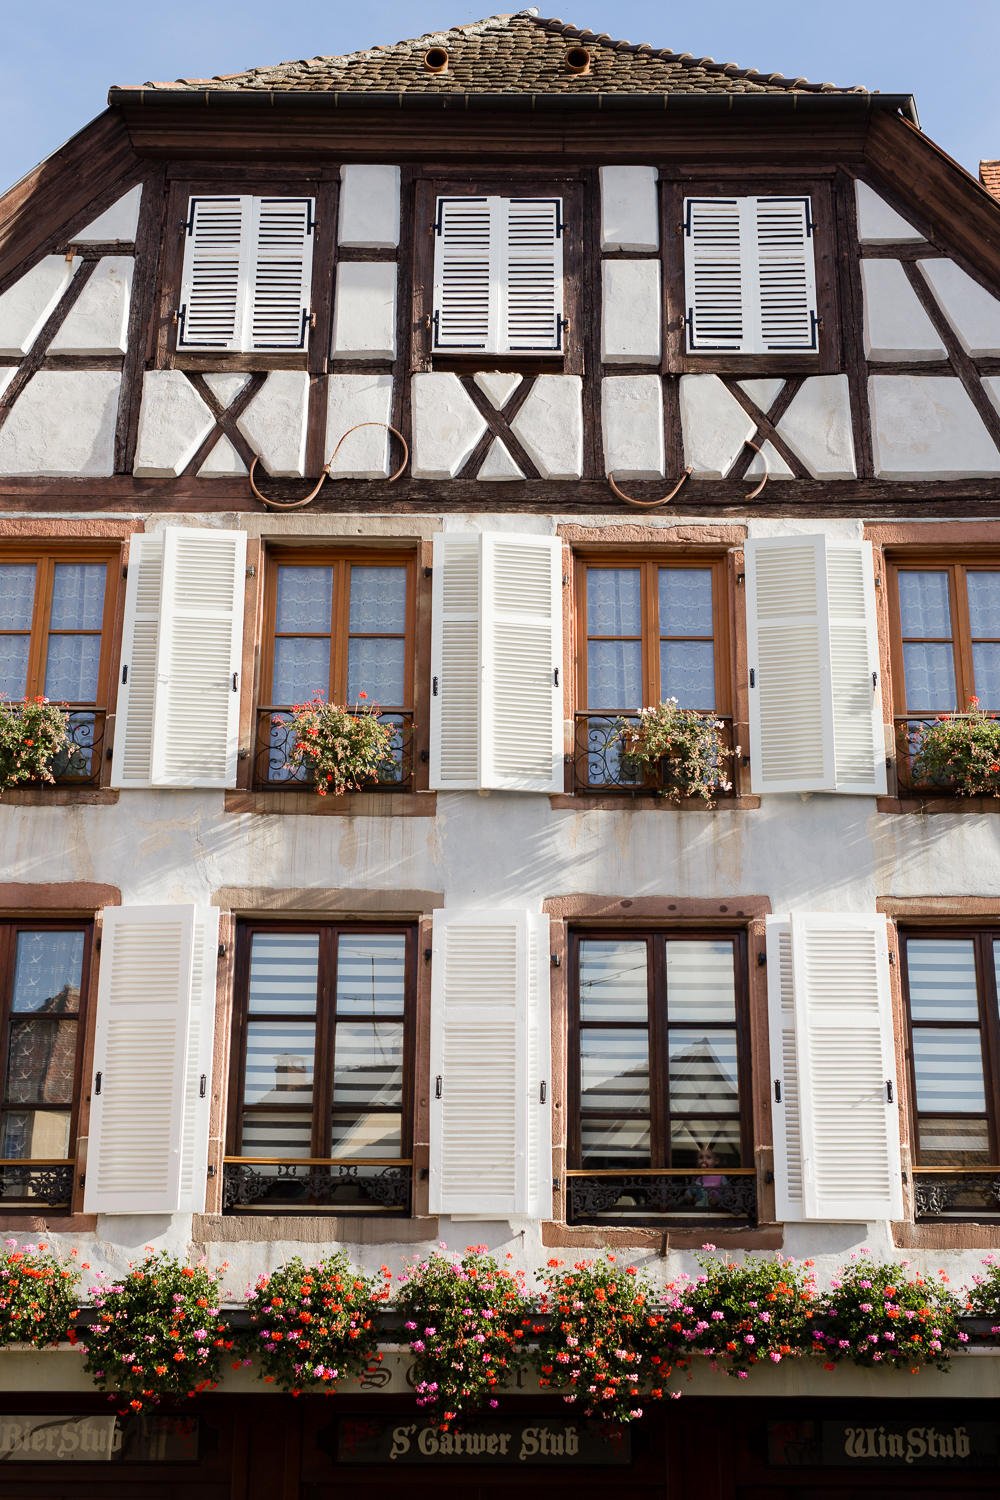 weekend-in-alsace-Ribeauvillé-best-place-to-visit-france-4.jpg